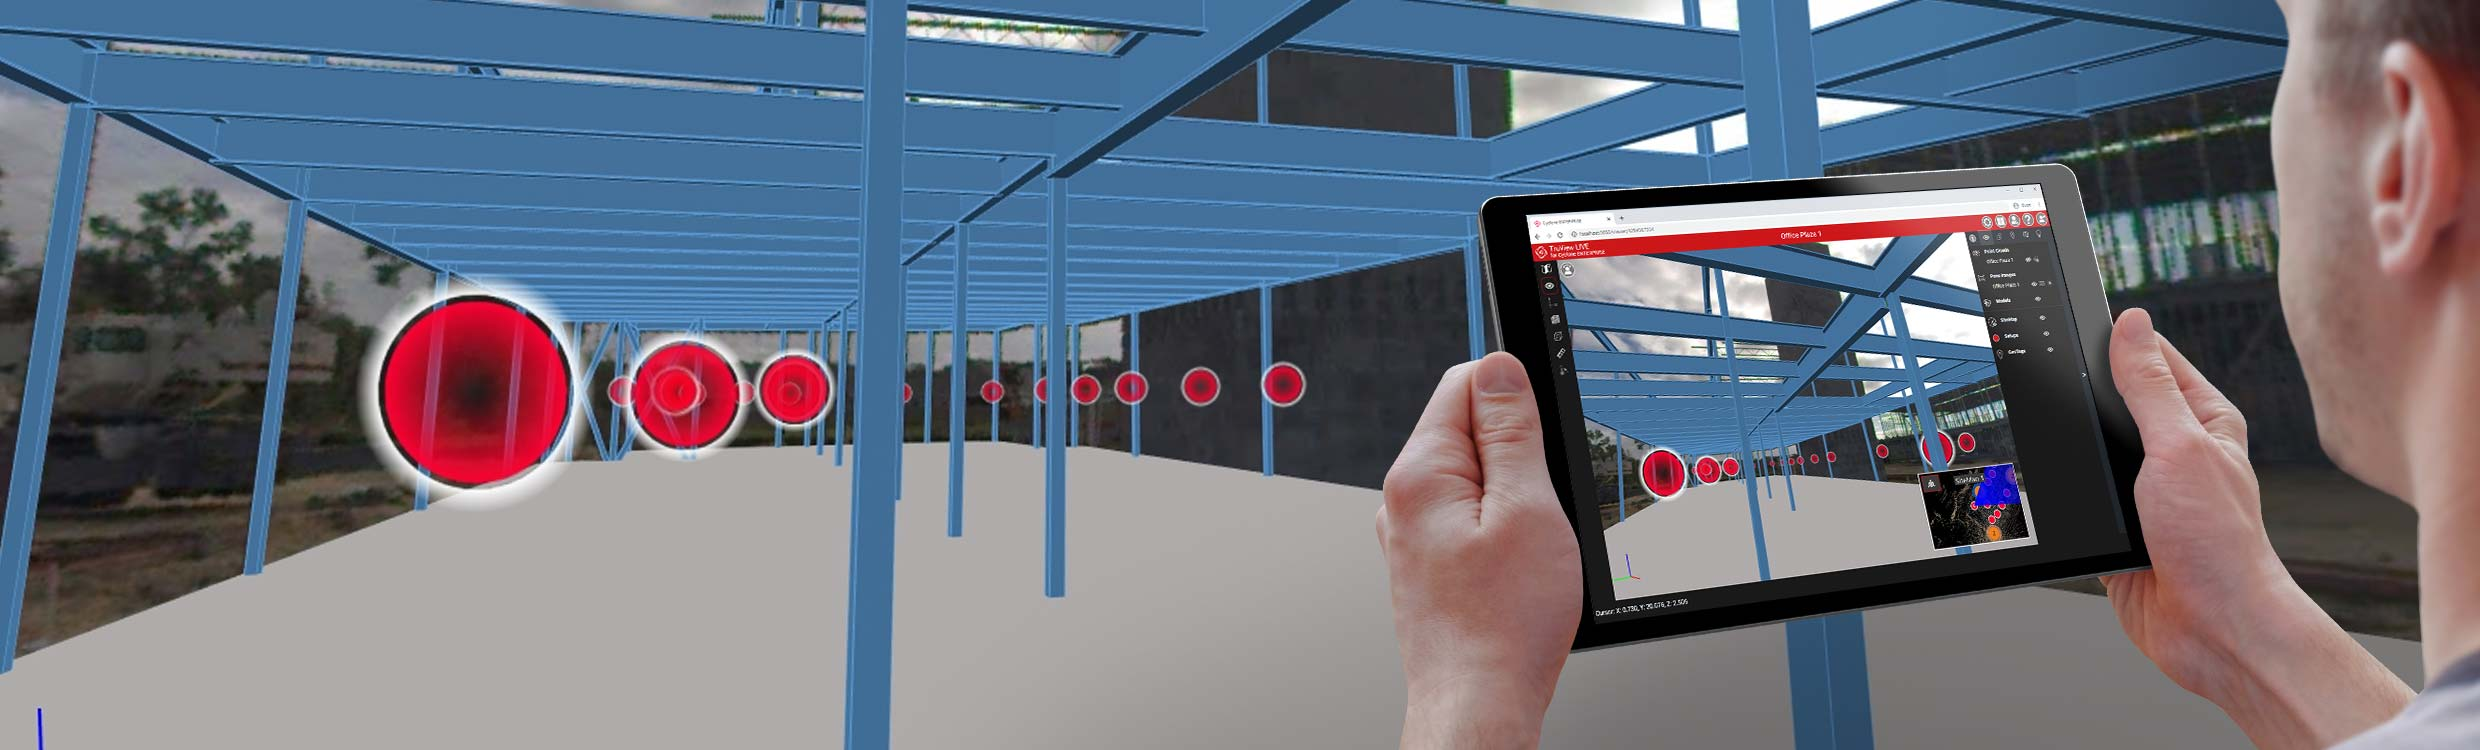 Leica-TruView-LIVE-Laser-Scanning-Software-Header-Image-2480x750